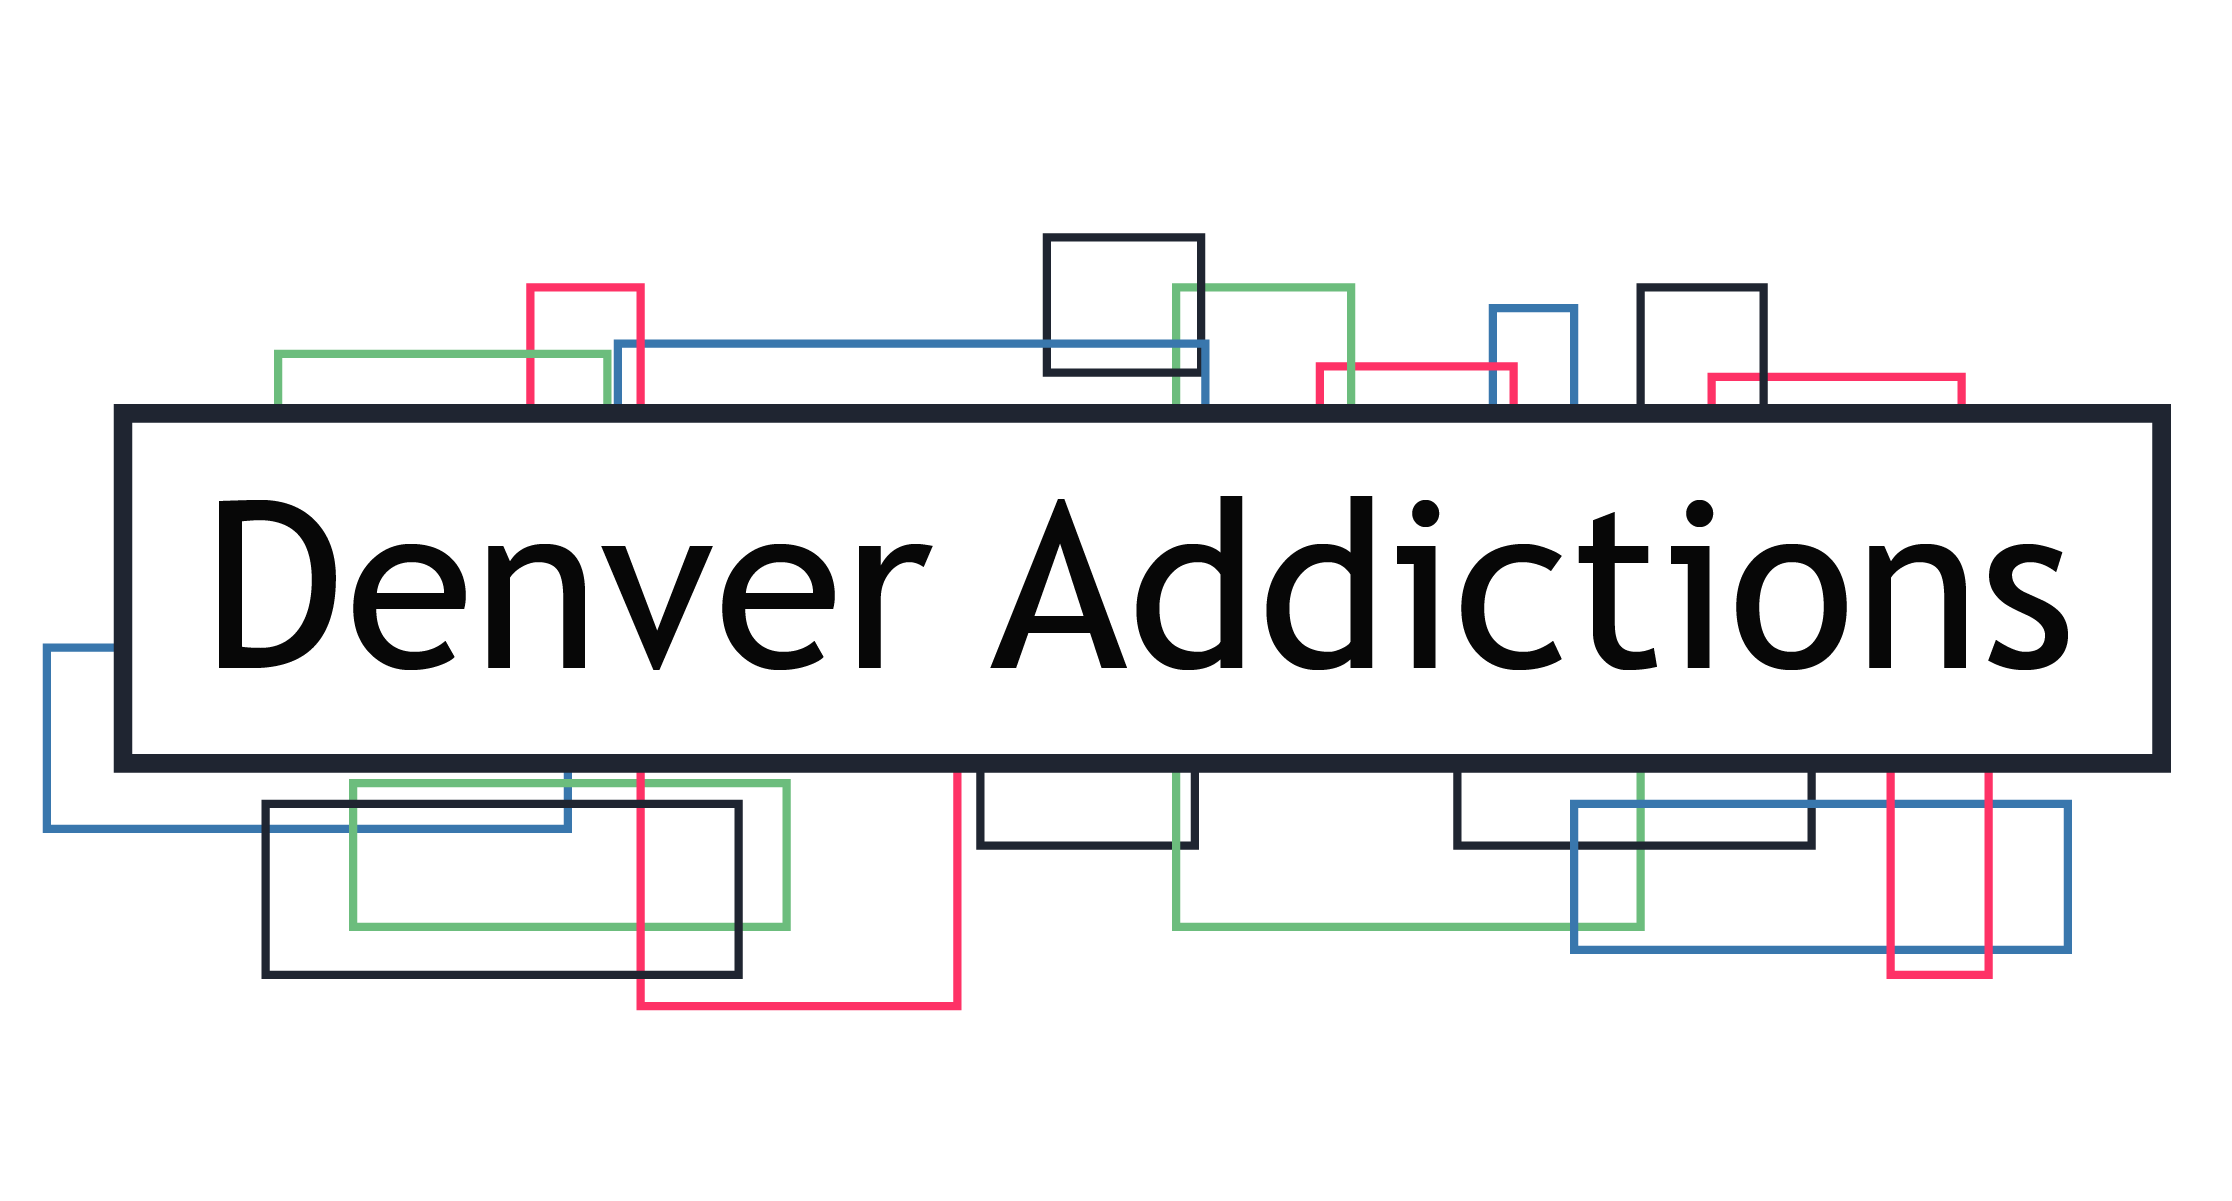 Denver Addictions